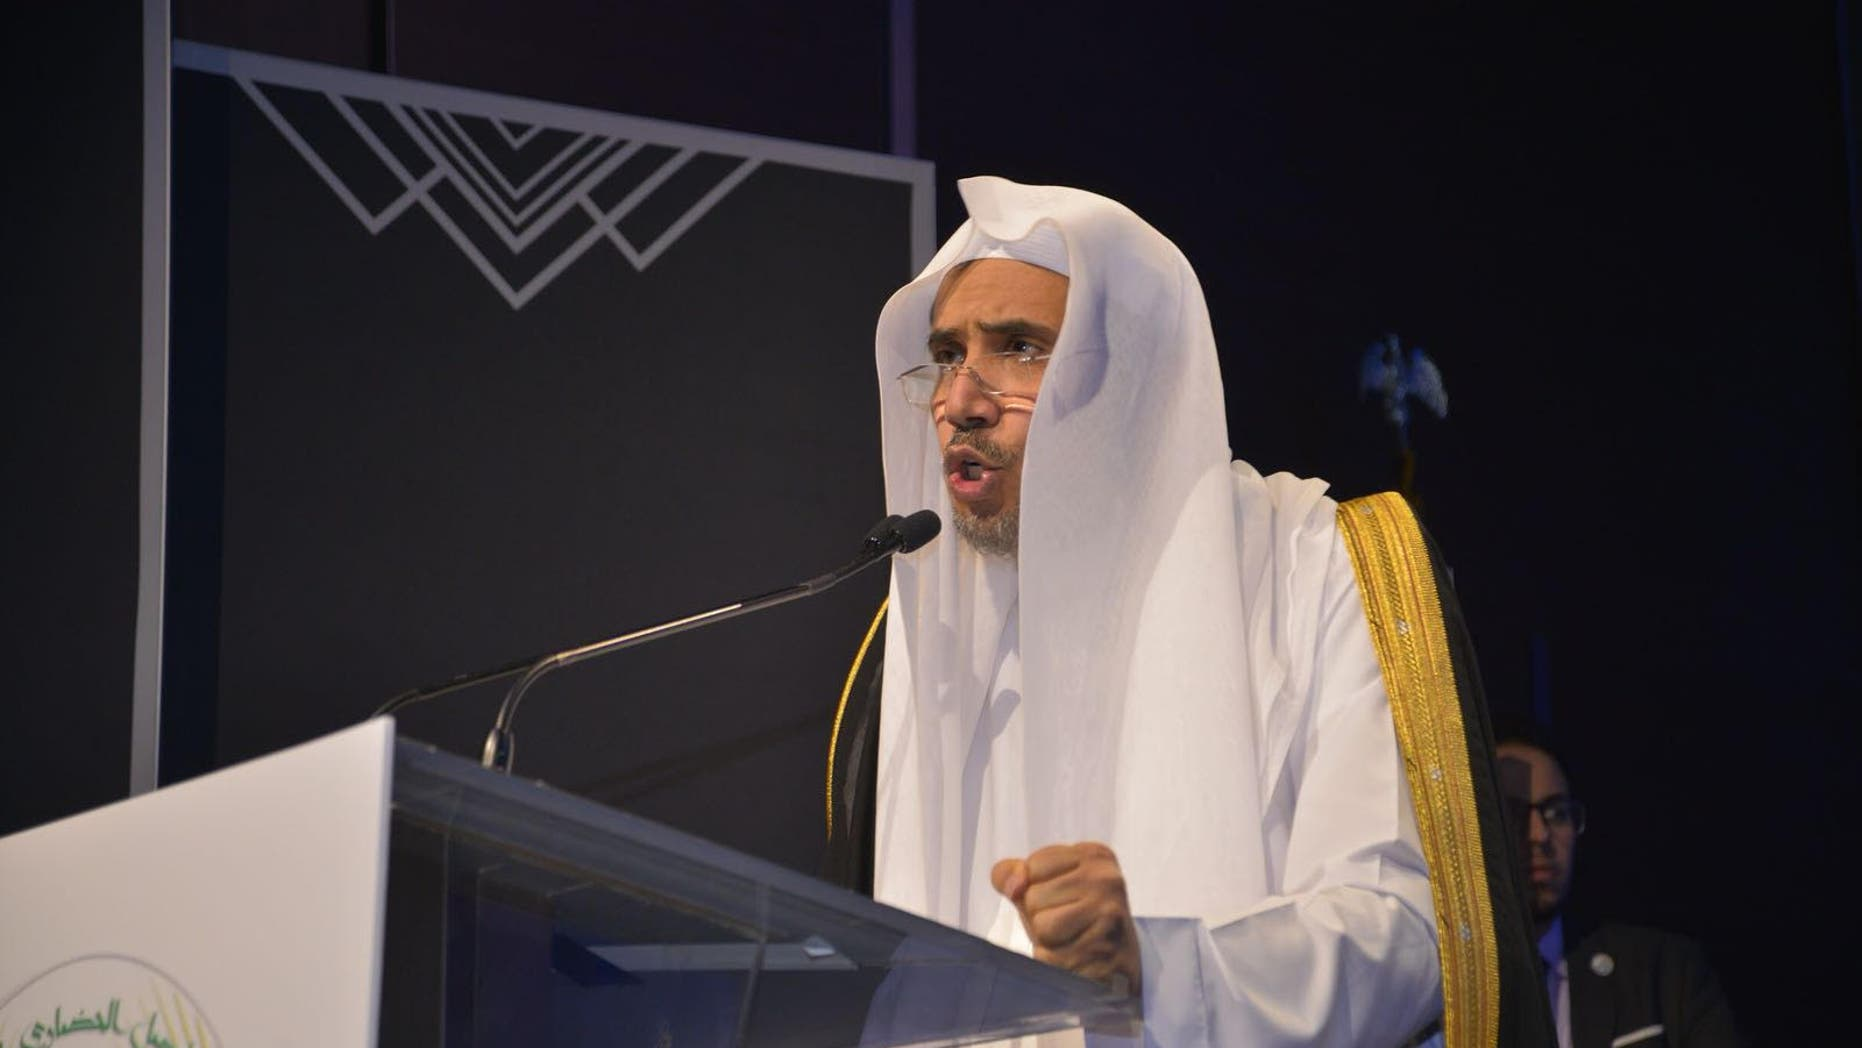 Muhammad bin Abdul Karim Alissa, 43, the former Saudi Justice Minister and current Secretary-General of the Muslim World League